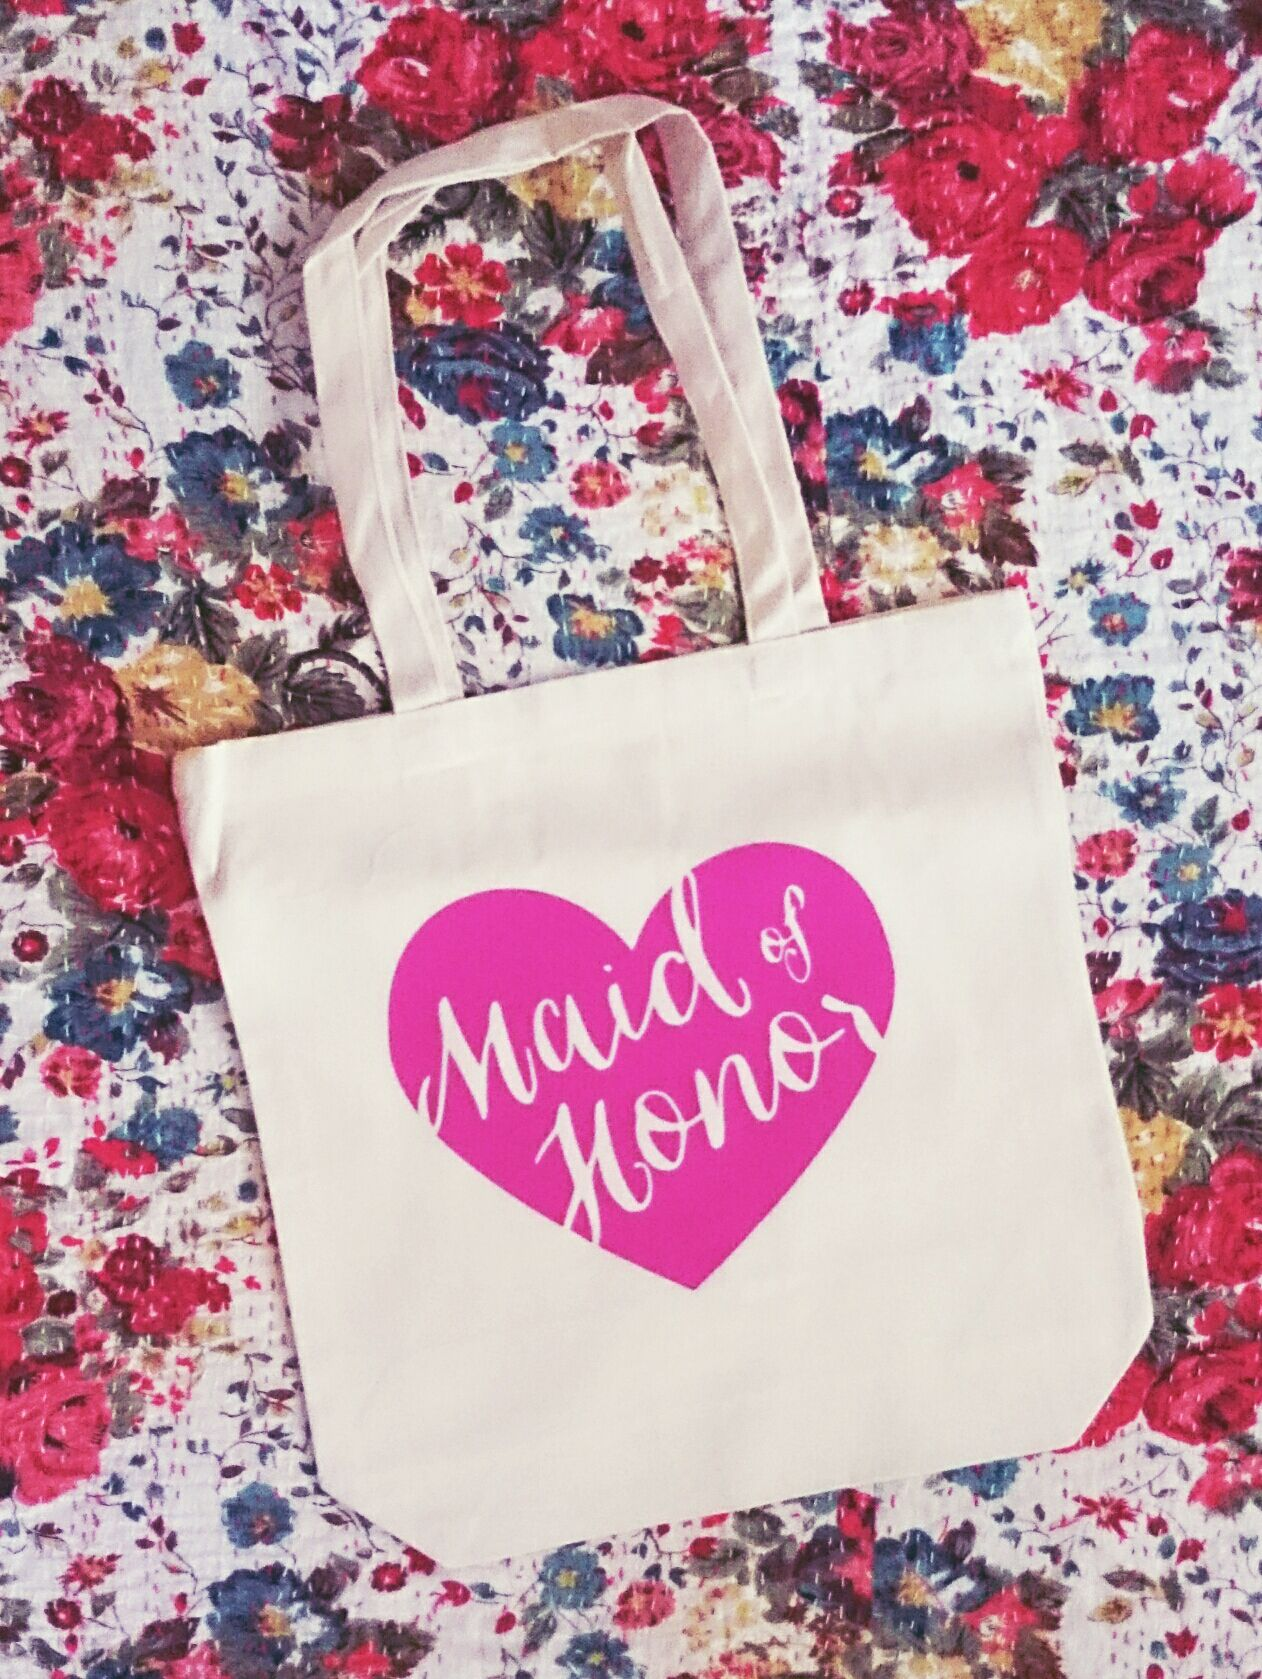 Maid Of Honor Pink Heart Calligraphy Tote Gift Bag Gifts For Your Bridesmaids